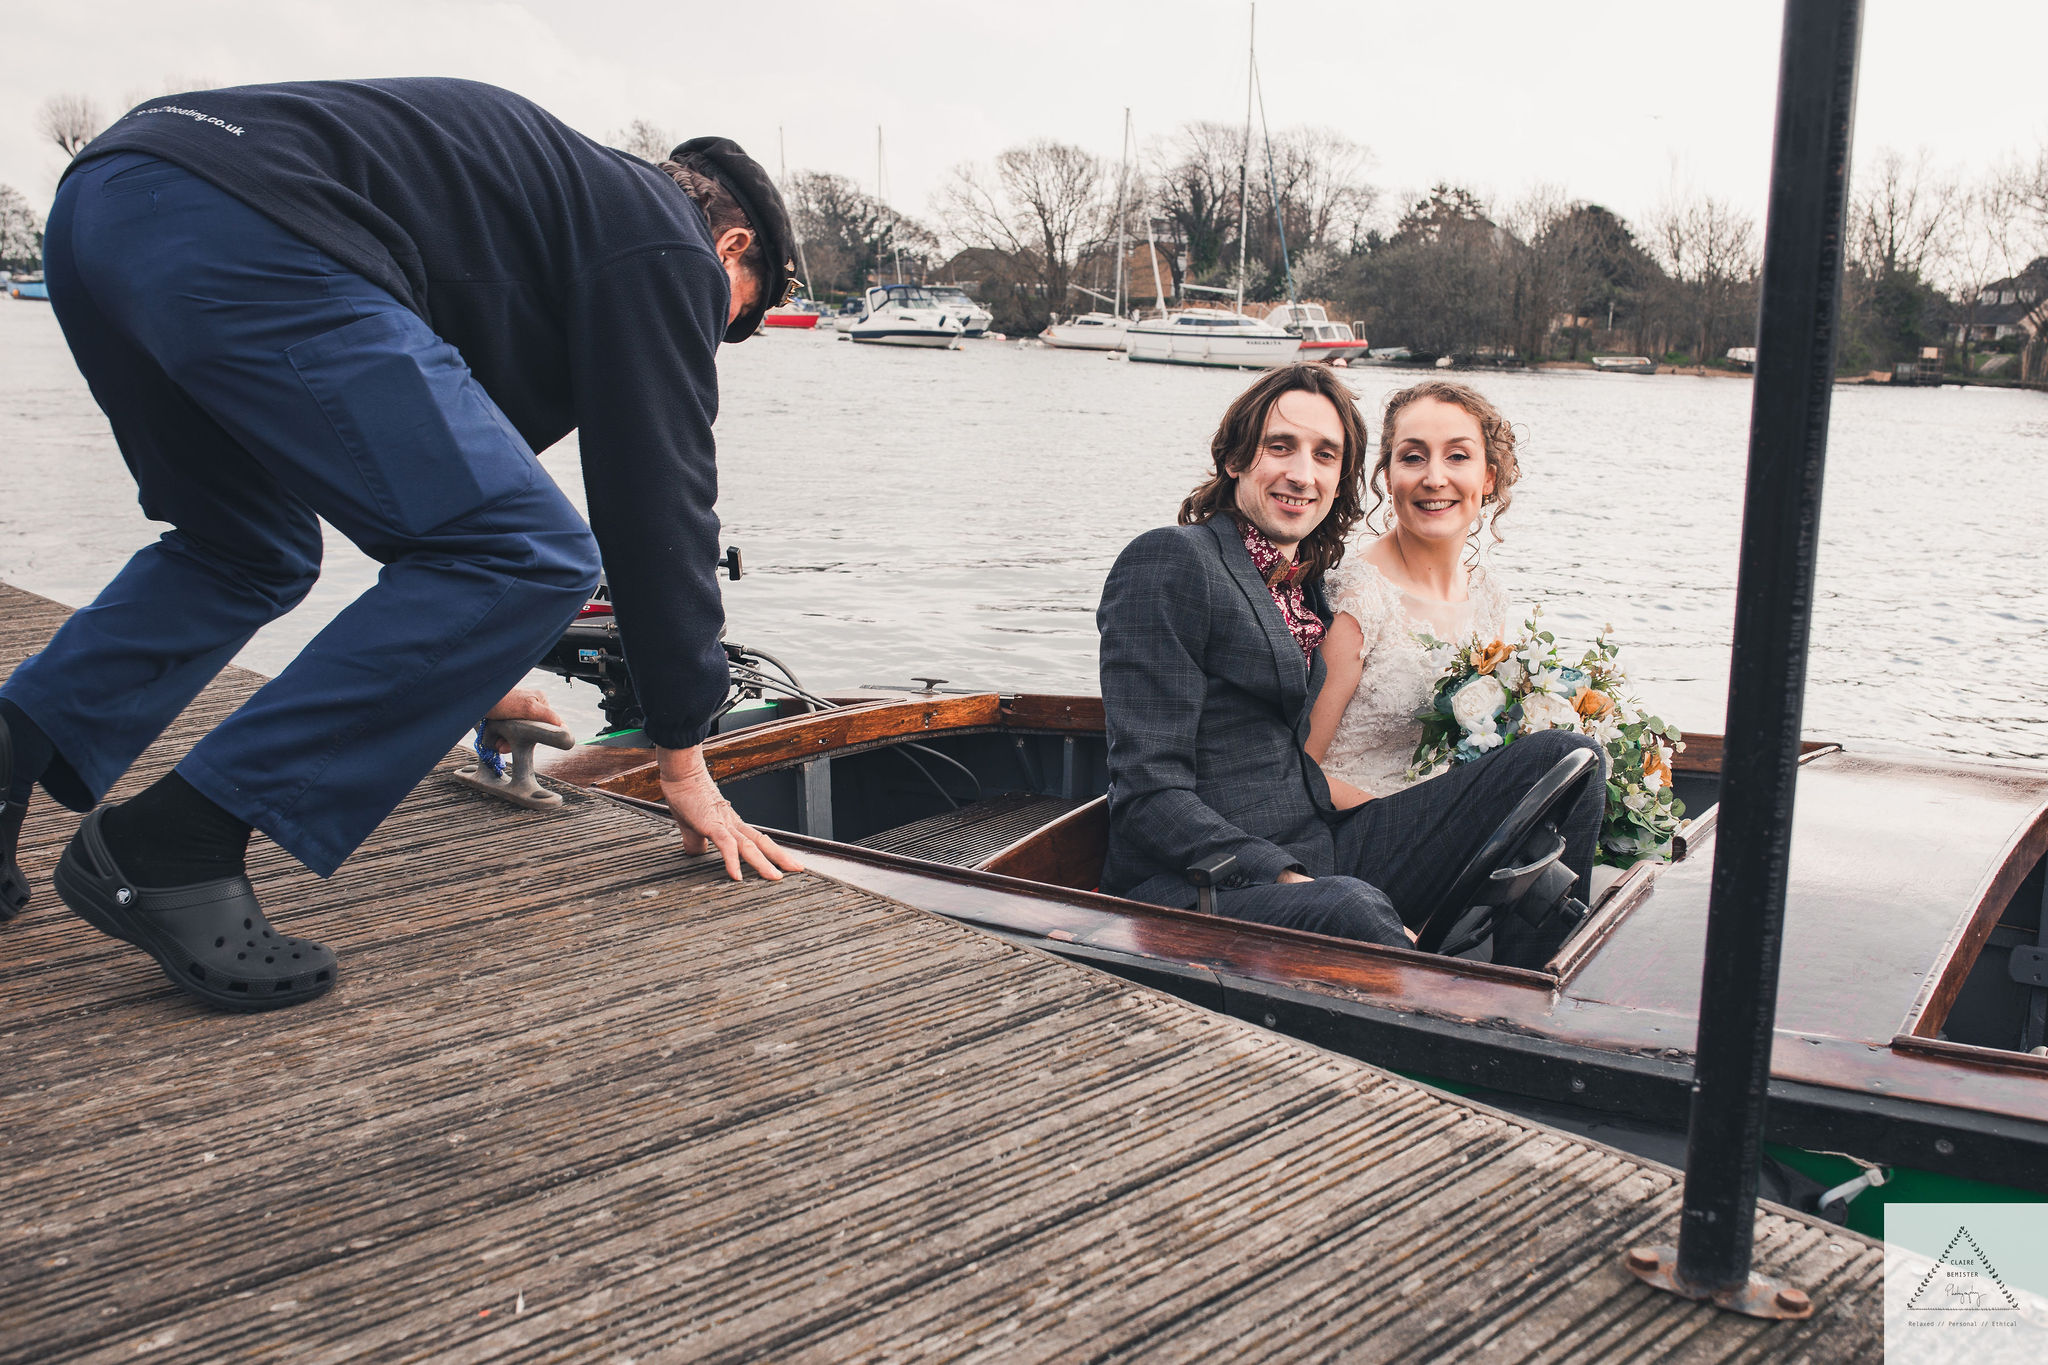 Unique Christchurch Wedding- unique wedding inspiration- alternative wedding- unique wedding ideas- alternative wedding ideas- wedding blog- wedding boat-wedding arrival